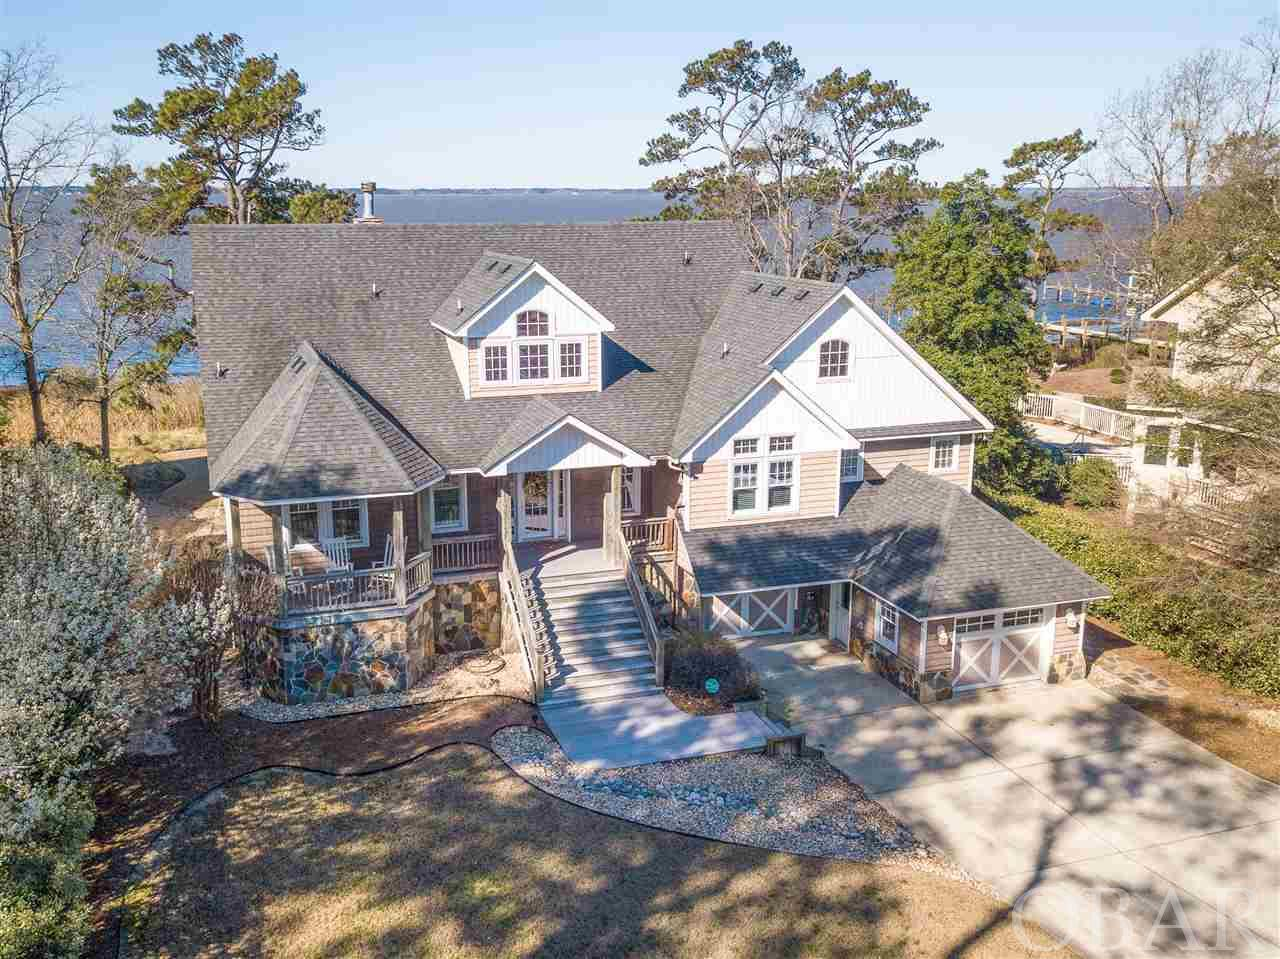 6044 Currituck Road,Kitty Hawk,NC 27949,4 Bedrooms Bedrooms,3 BathroomsBathrooms,Residential,Currituck Road,101081